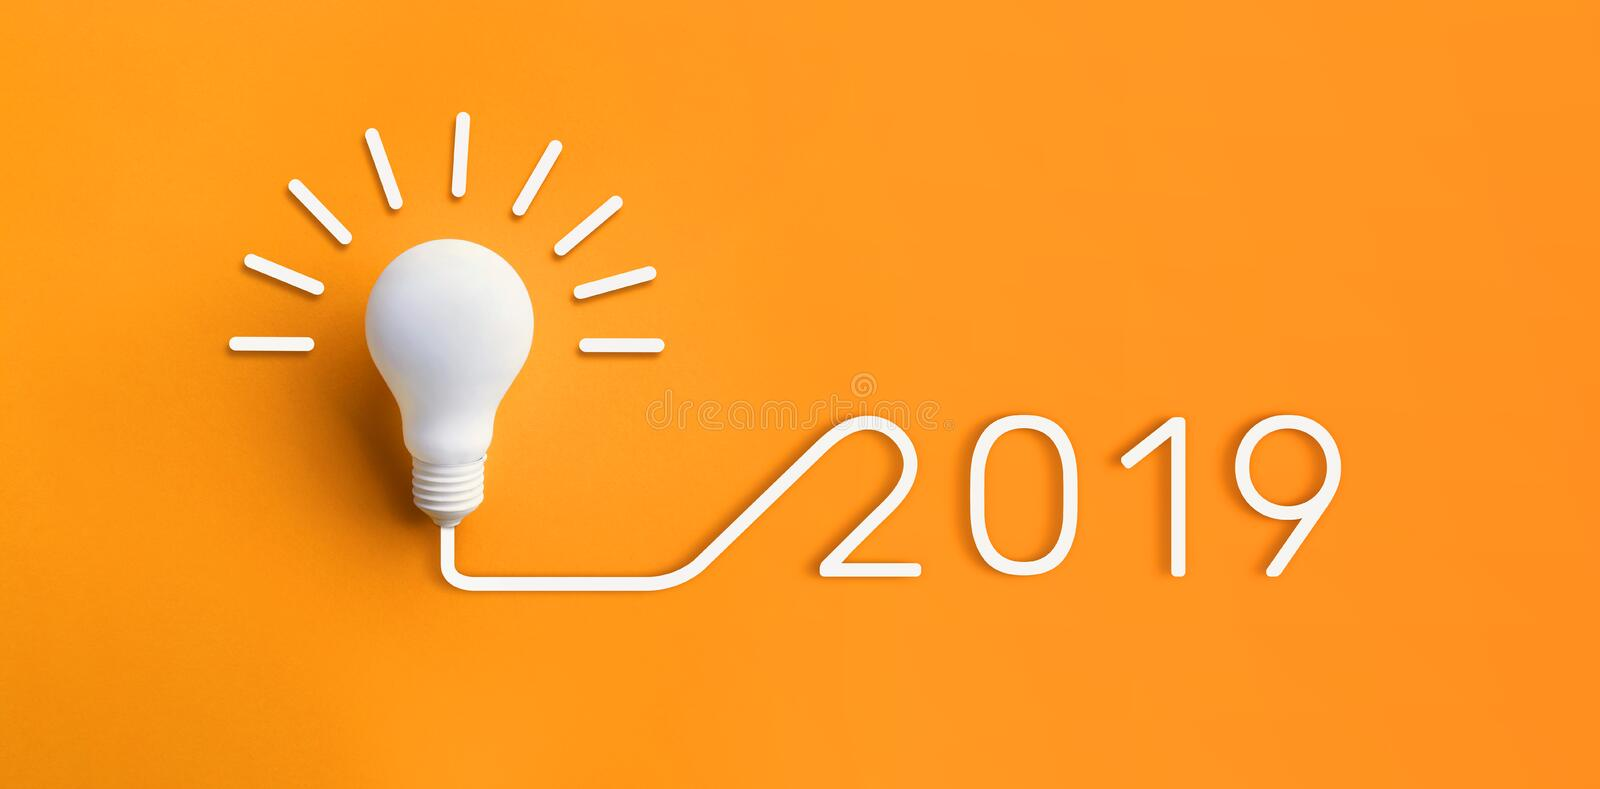 2019 creativity inspiration concepts with lightbulb on pastel. Color background. Business solution, planning ideas. glowing contents royalty free stock photo